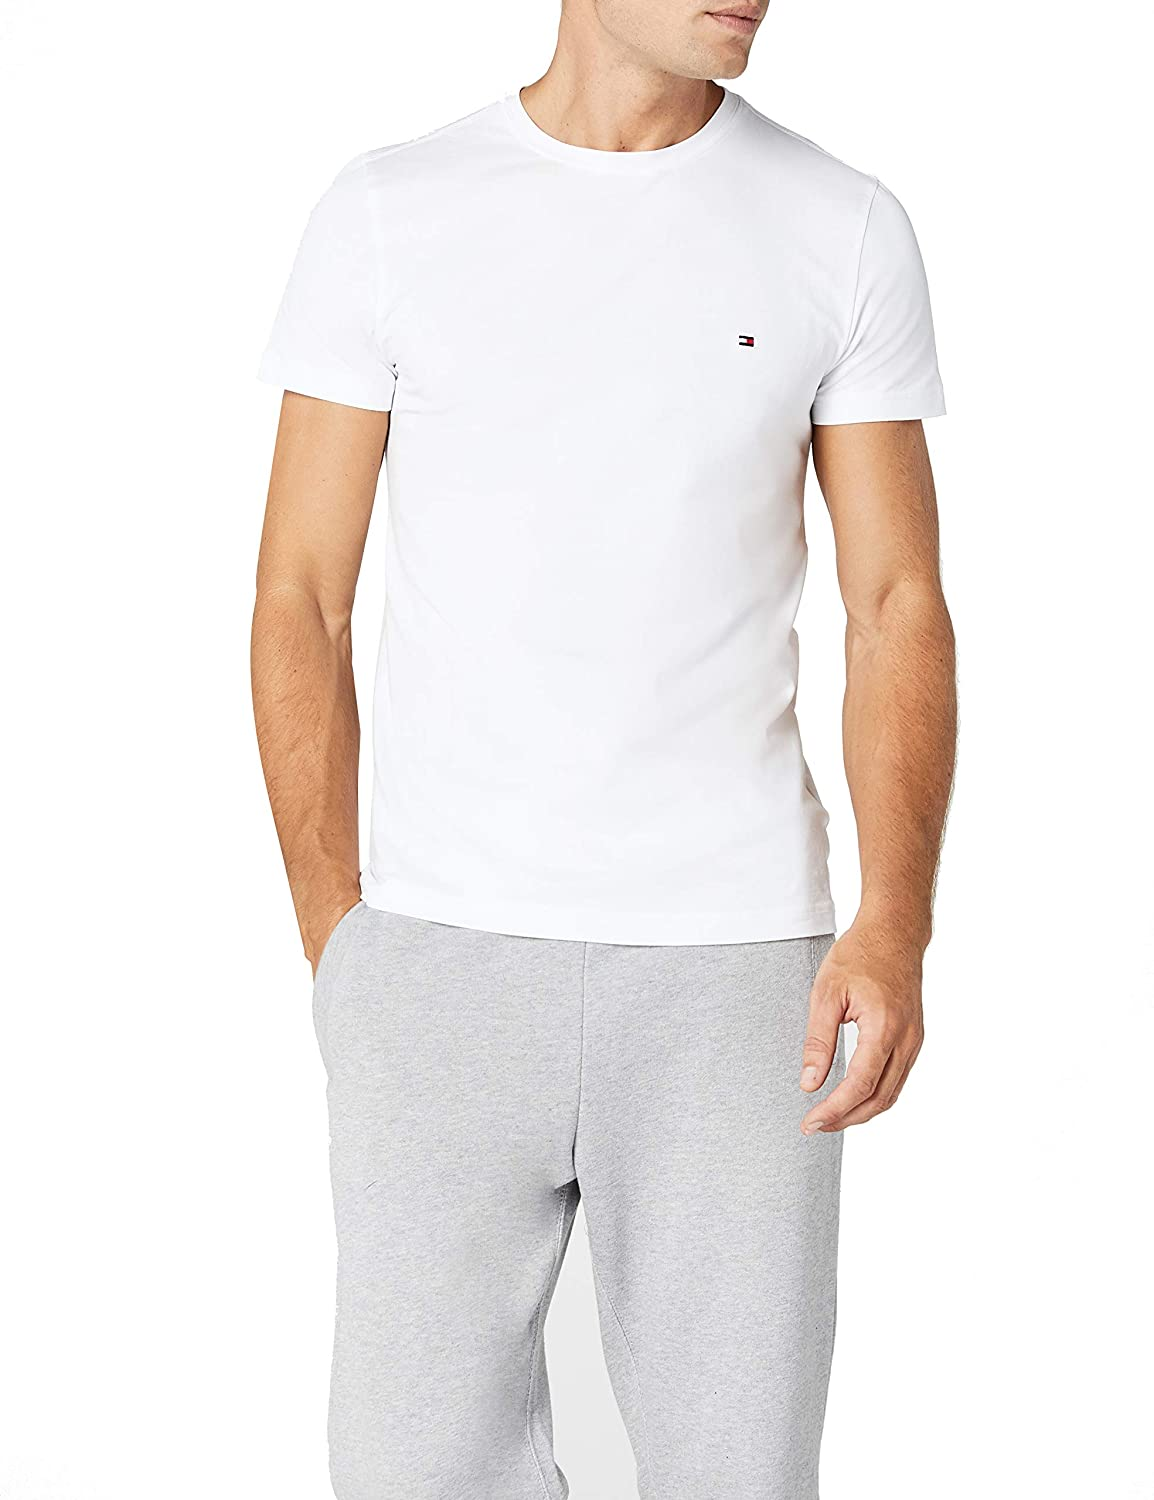 TALLA S. Tommy Hilfiger Core Stretch Slim Cneck tee Camiseta para Hombre